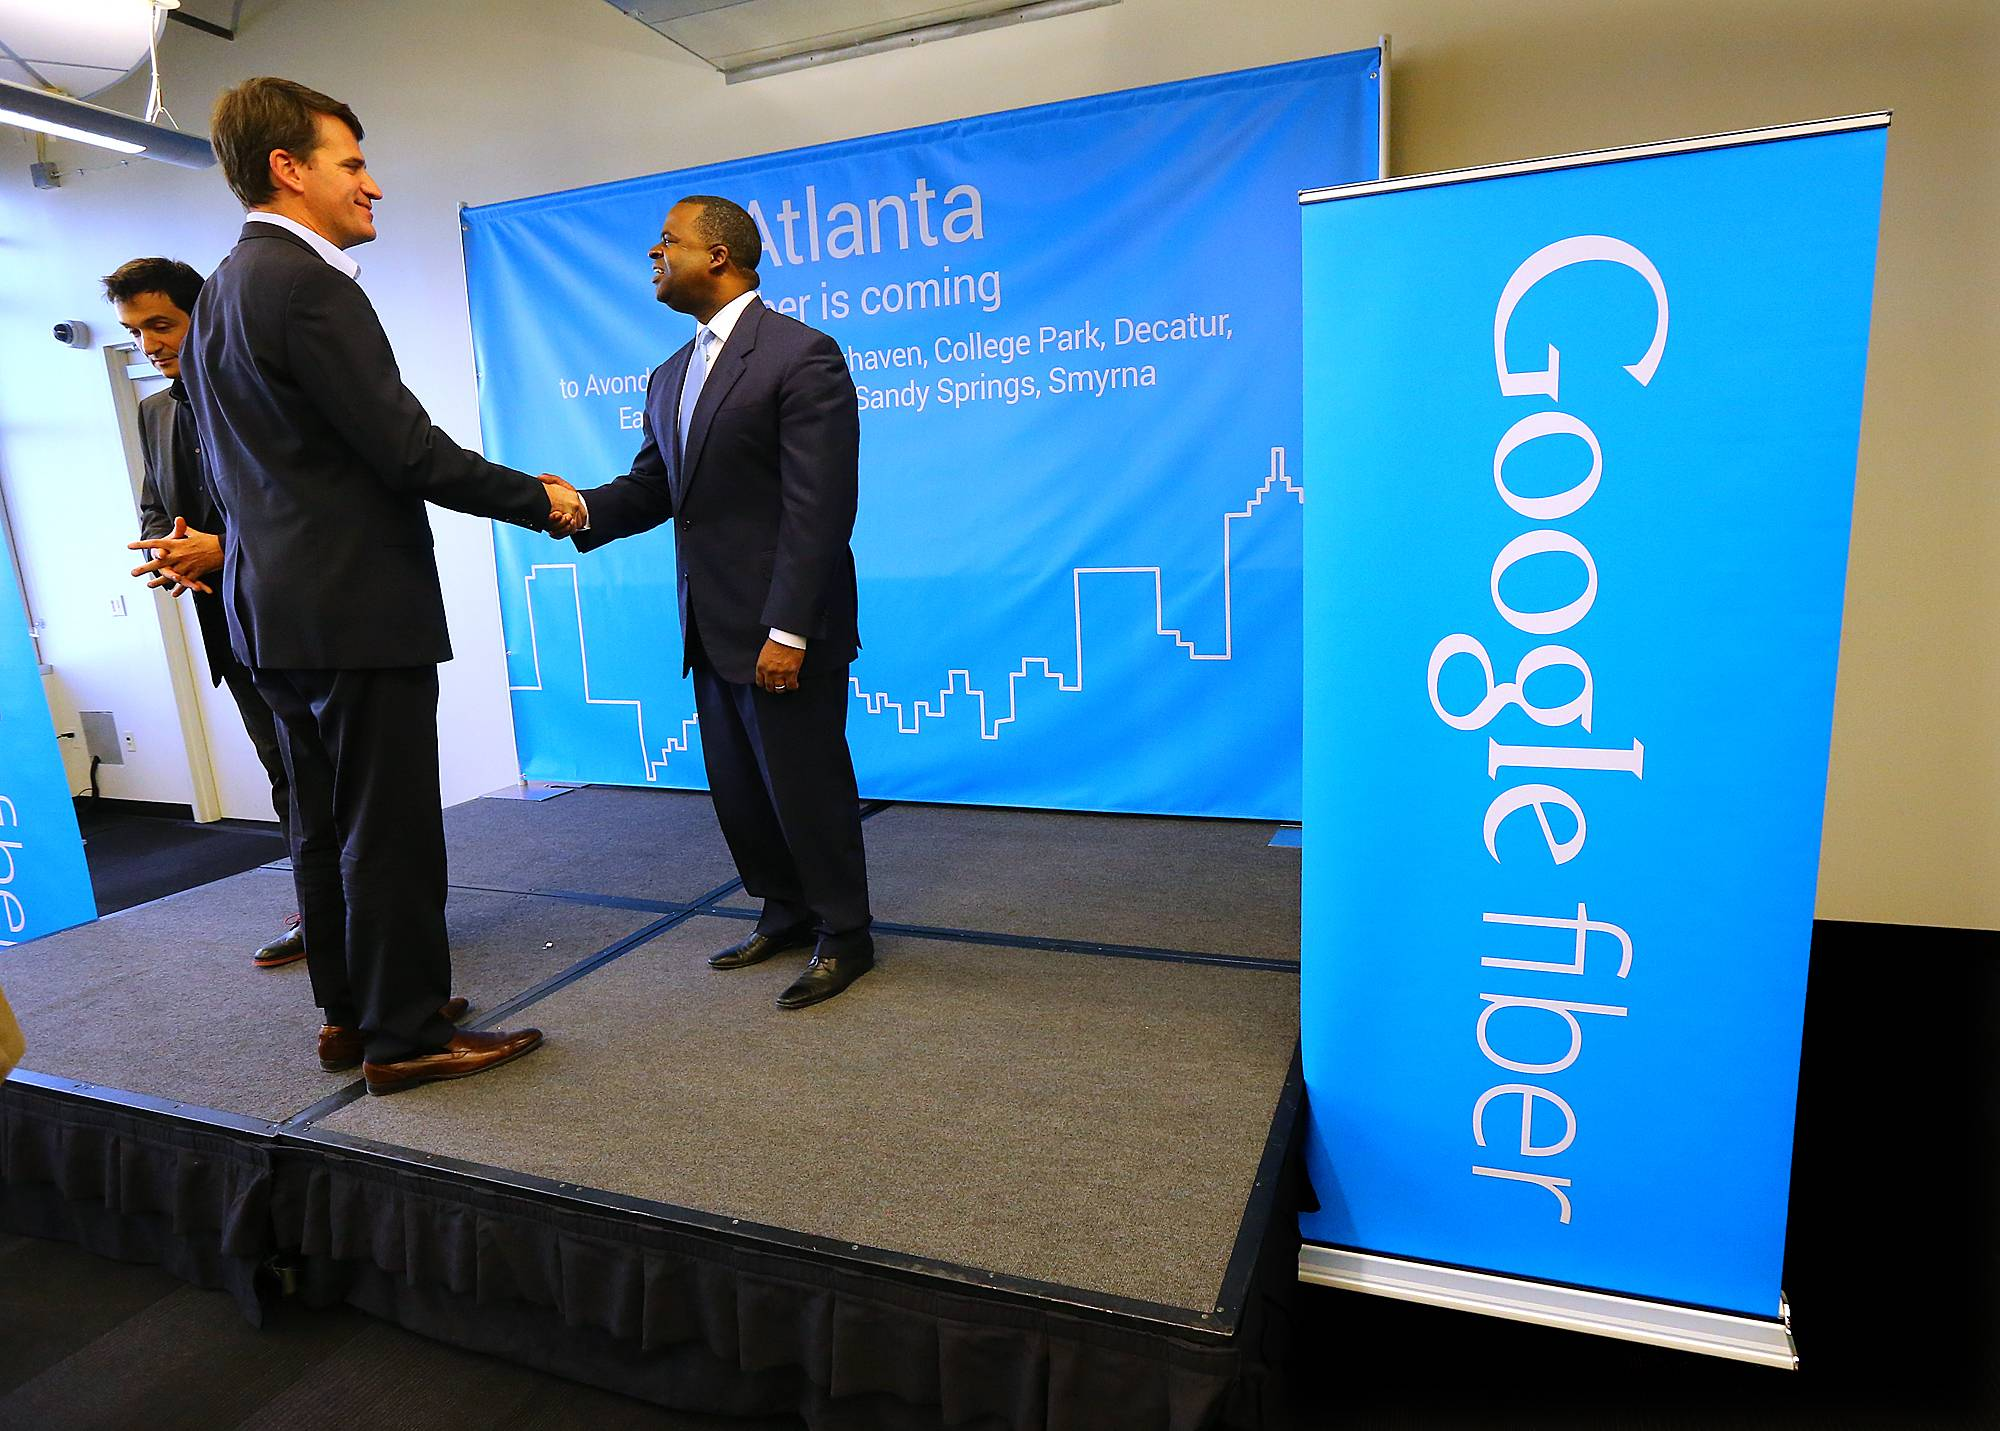 In 2015 Google announced the launch of Google Fiber in Atlanta, Charlotte, Raleigh-Durham, and Nashville.